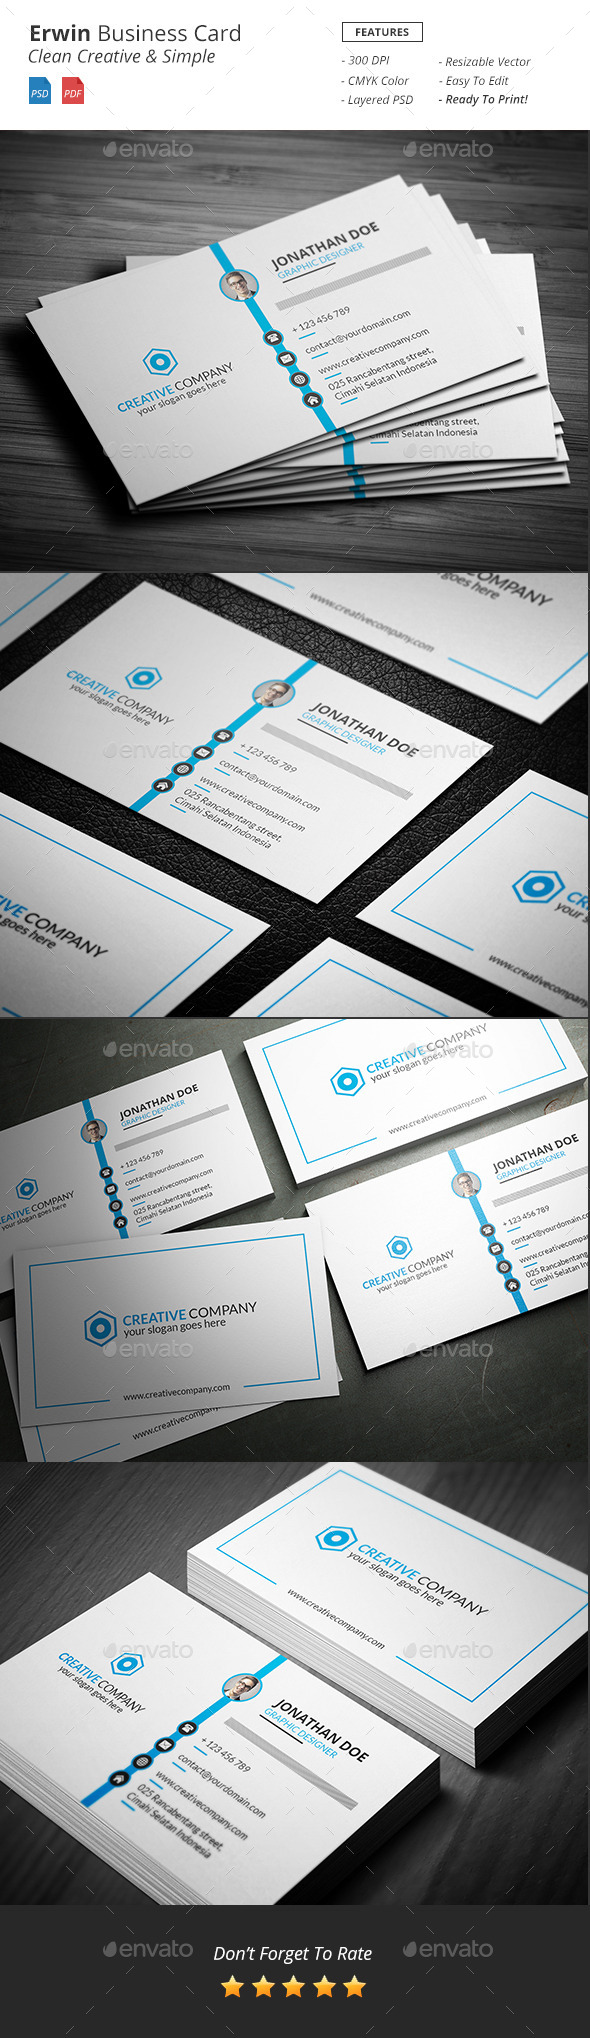 GraphicRiver Erwin Clean Creative Business Card 11621573